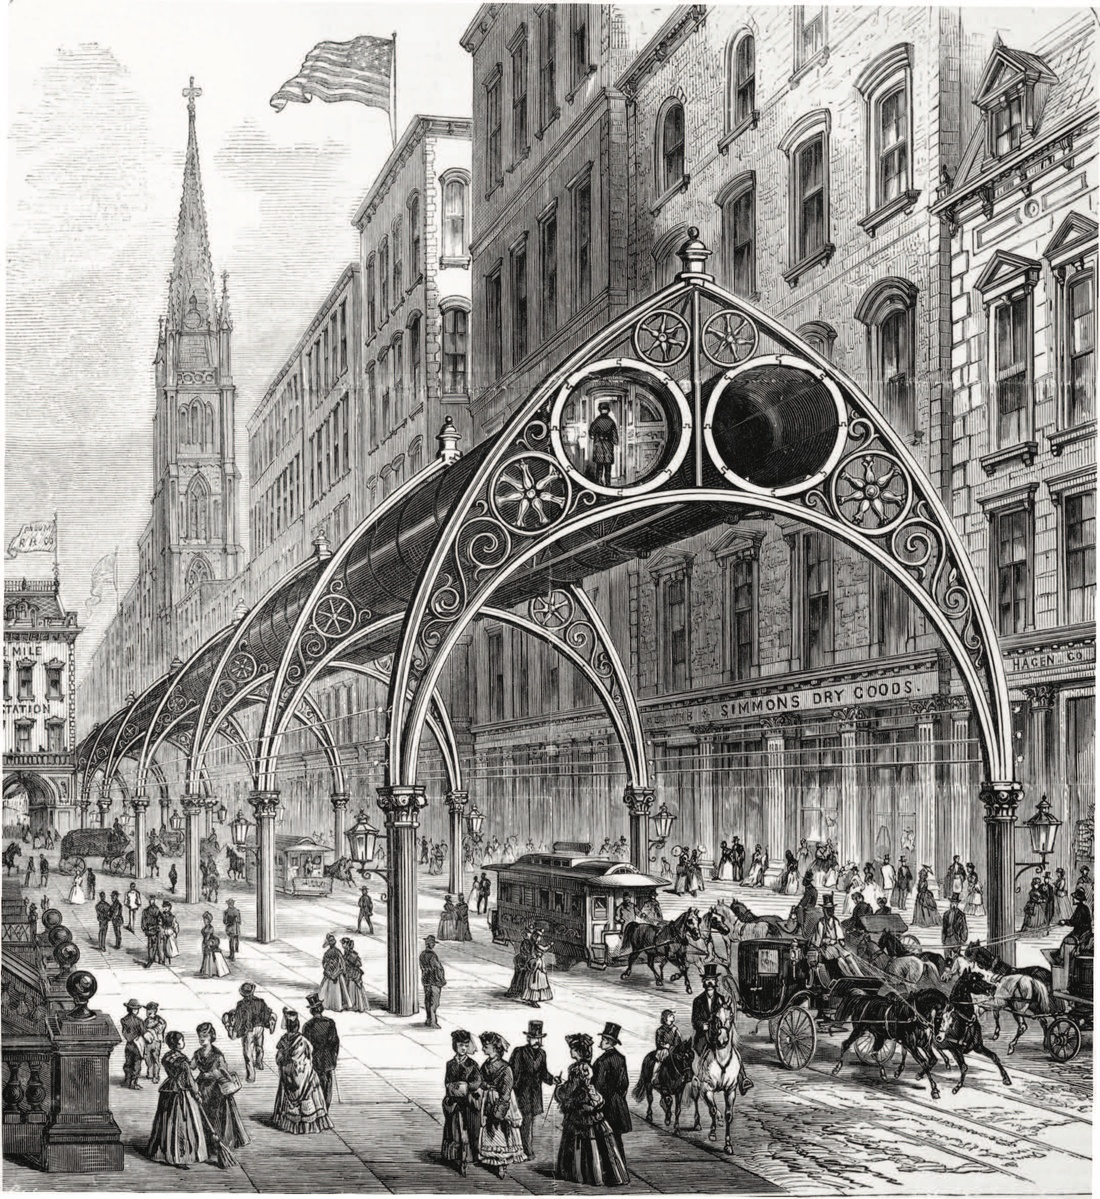 Rufus Henry Gilbert, Gilbert's Elevated Railway, 1870. Courtesy of ARTBOOK | D.A.P.